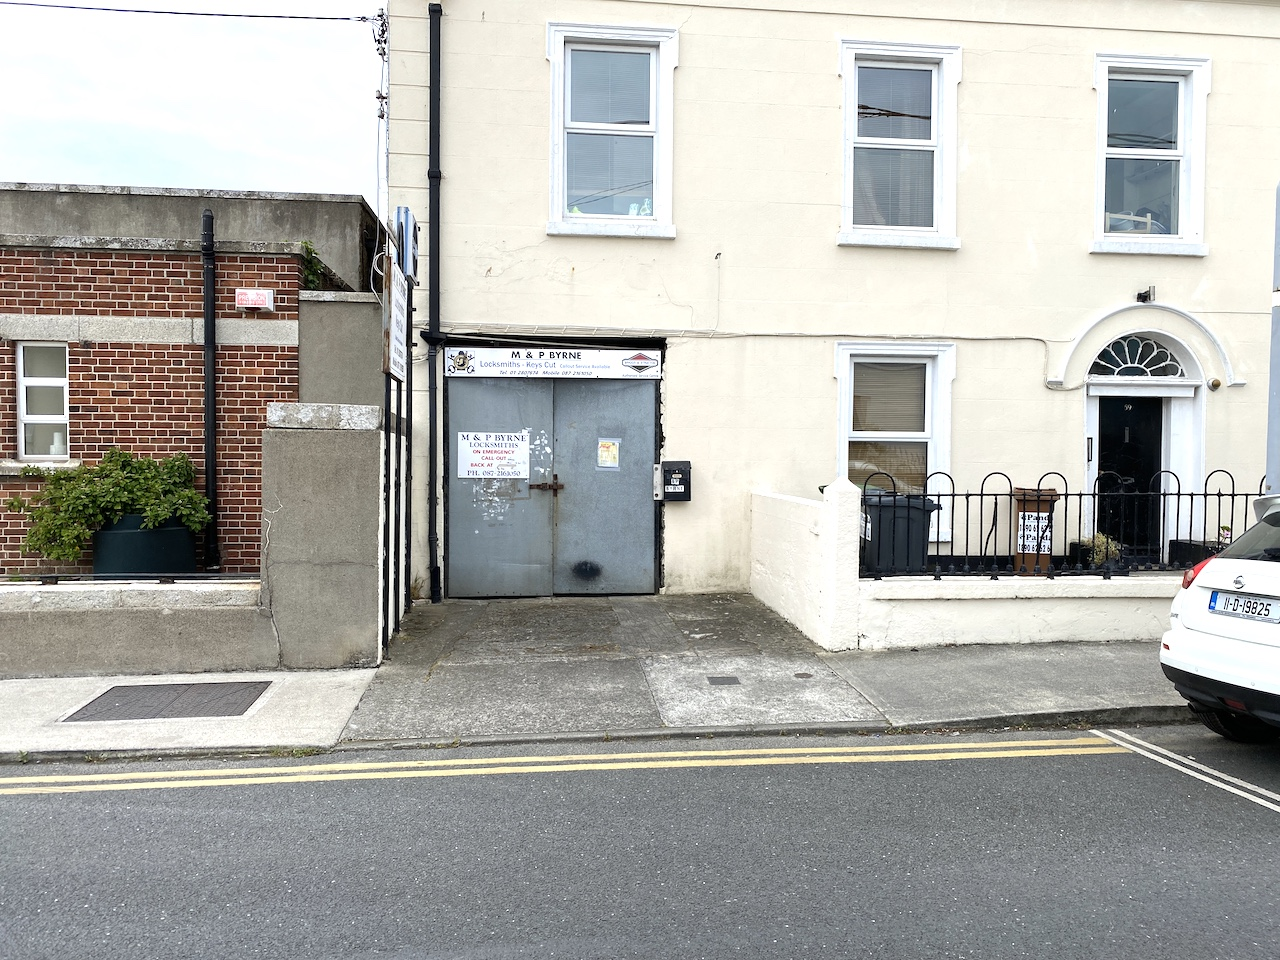 SALE AGREED – Dun Laoghaire – Workshop/Warehouse/Development Site subject to PP